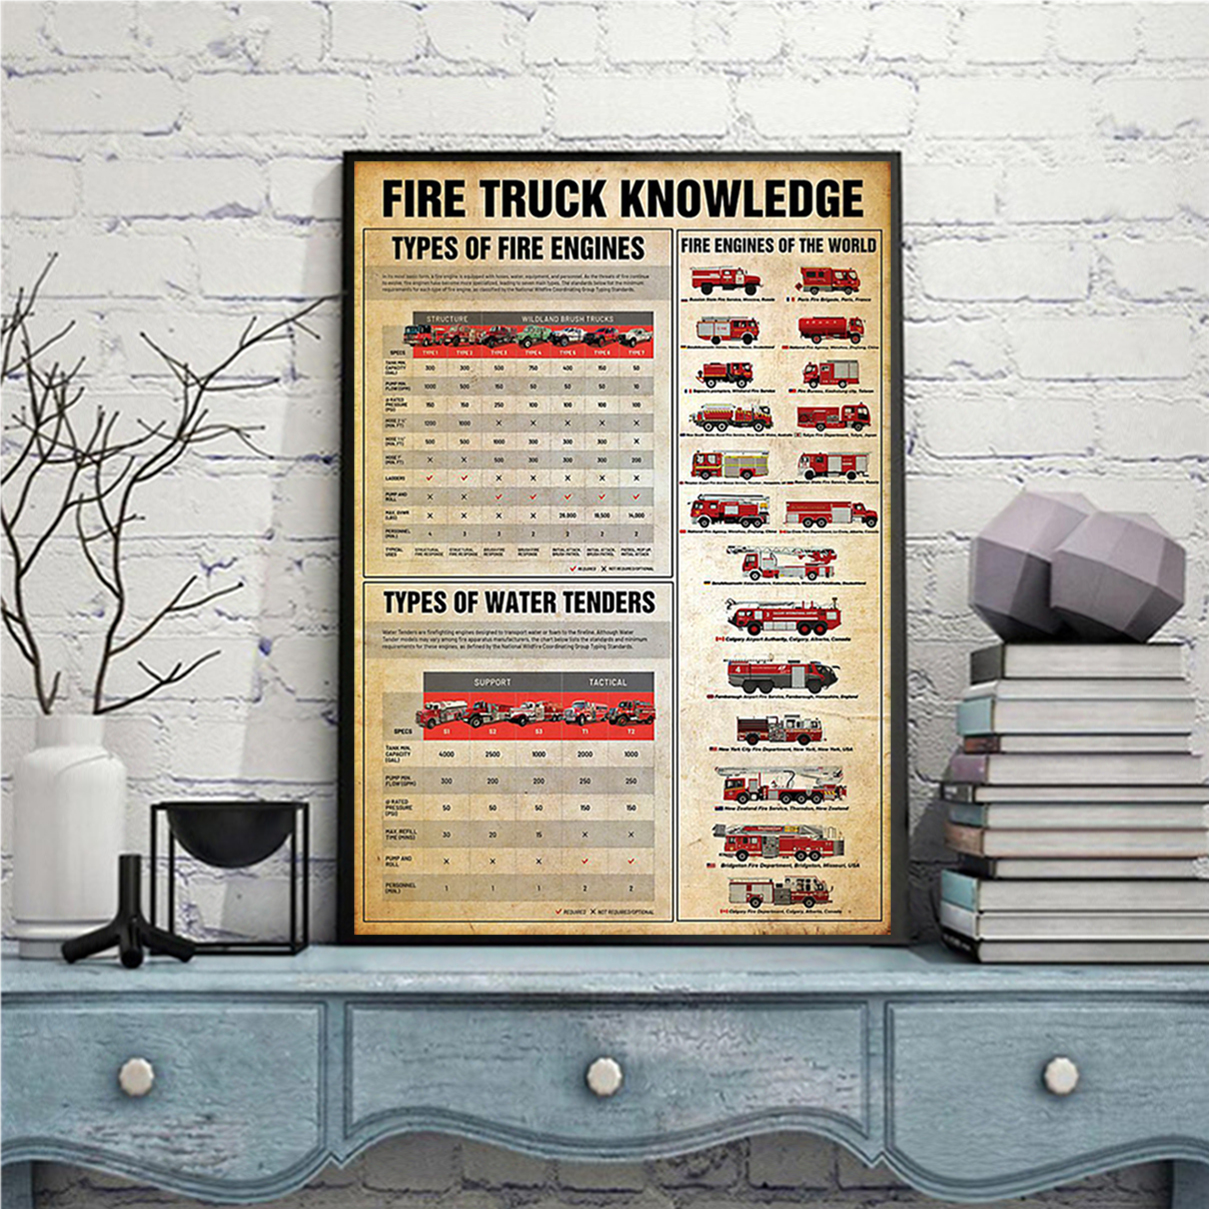 Firefighter fire truck knowledge poster A1